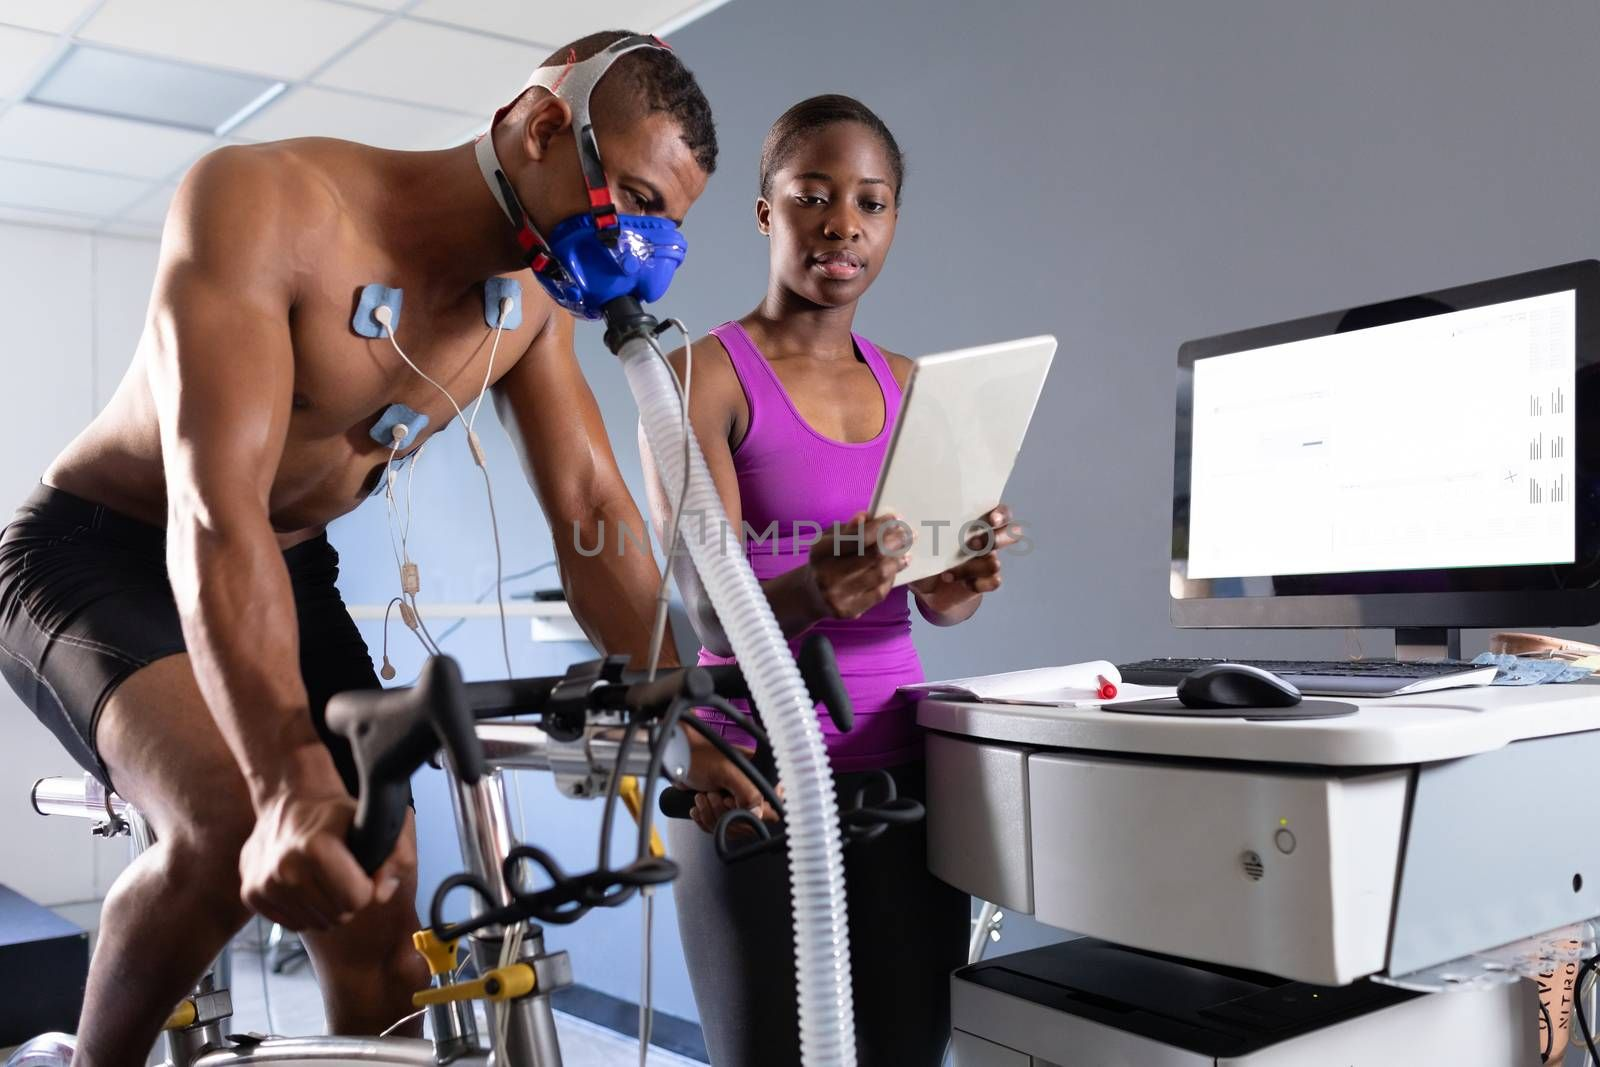 Side view of a naked African-American athletic man doing a fitness test using a mask connected to a monitor while riding an exercise bike and an African-American woman showing him the results inside a room at a sports centre. Bright modern gym with fit healthy people working out and training. Athlete testing themselves with cardiovascular fitness test on exercise bike